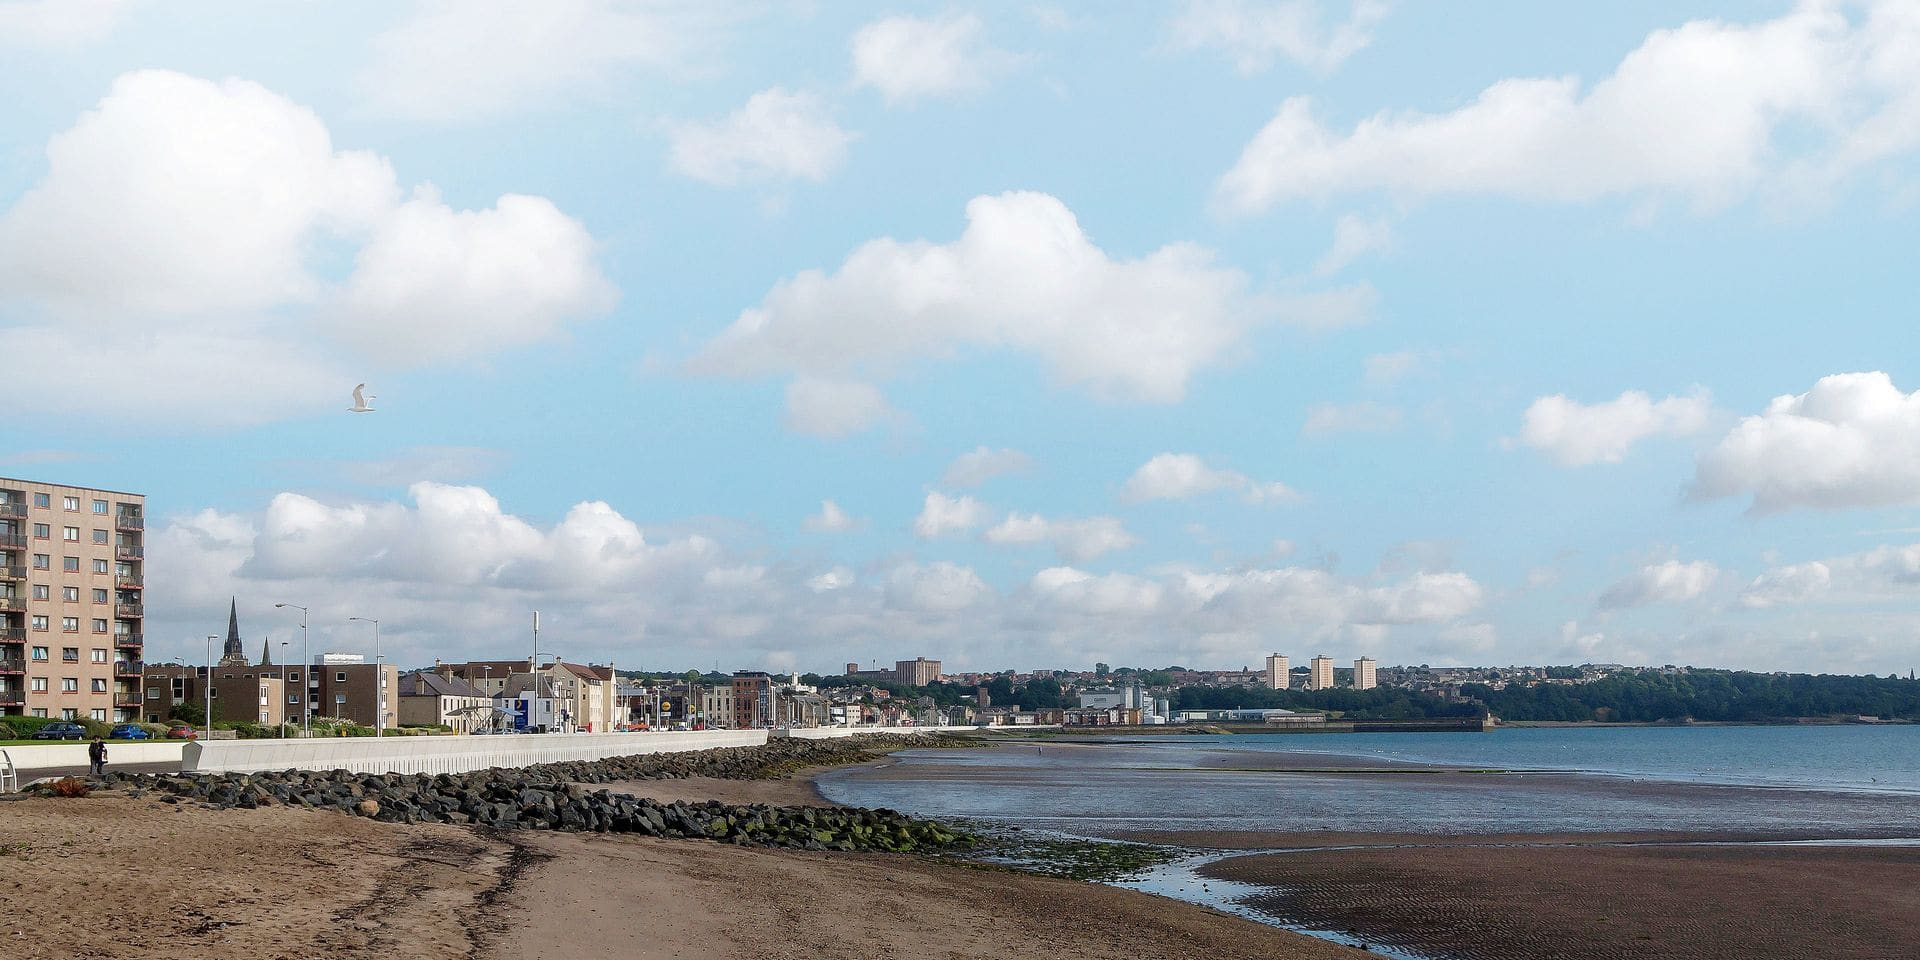 The,Beach,In,Kirkcaldy,On,The,Route,Of,The,Fife